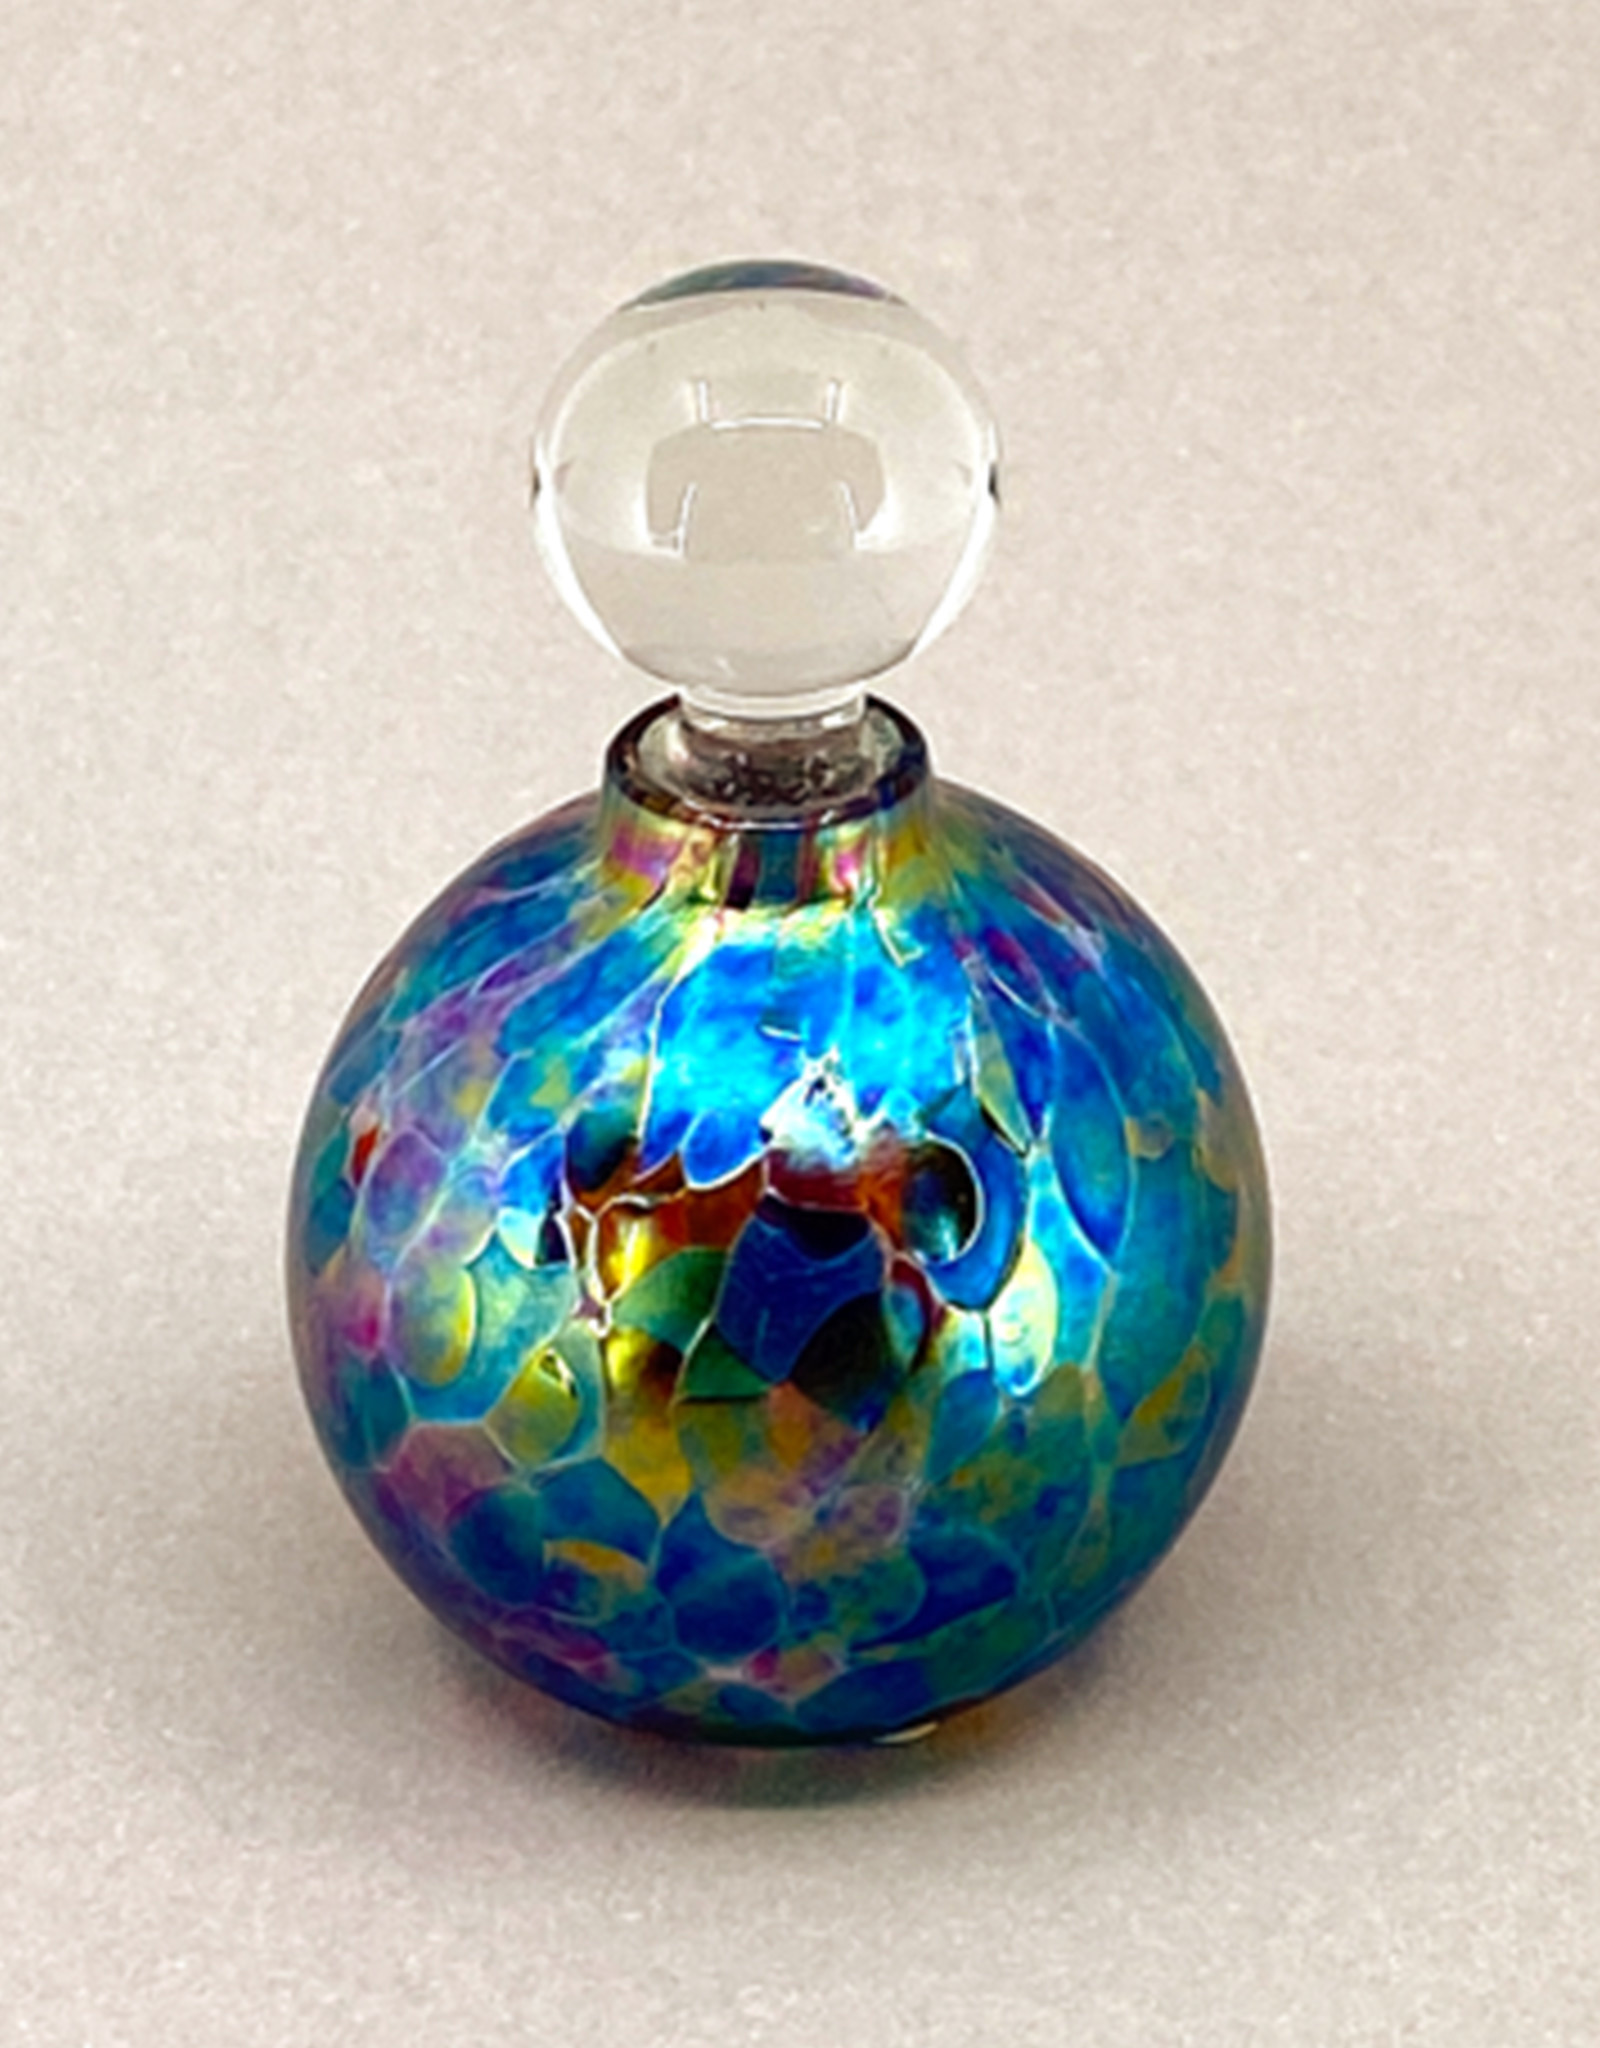 VICTORIA VARGA ROUND STAINED GLASS PERFUME BOTTLE